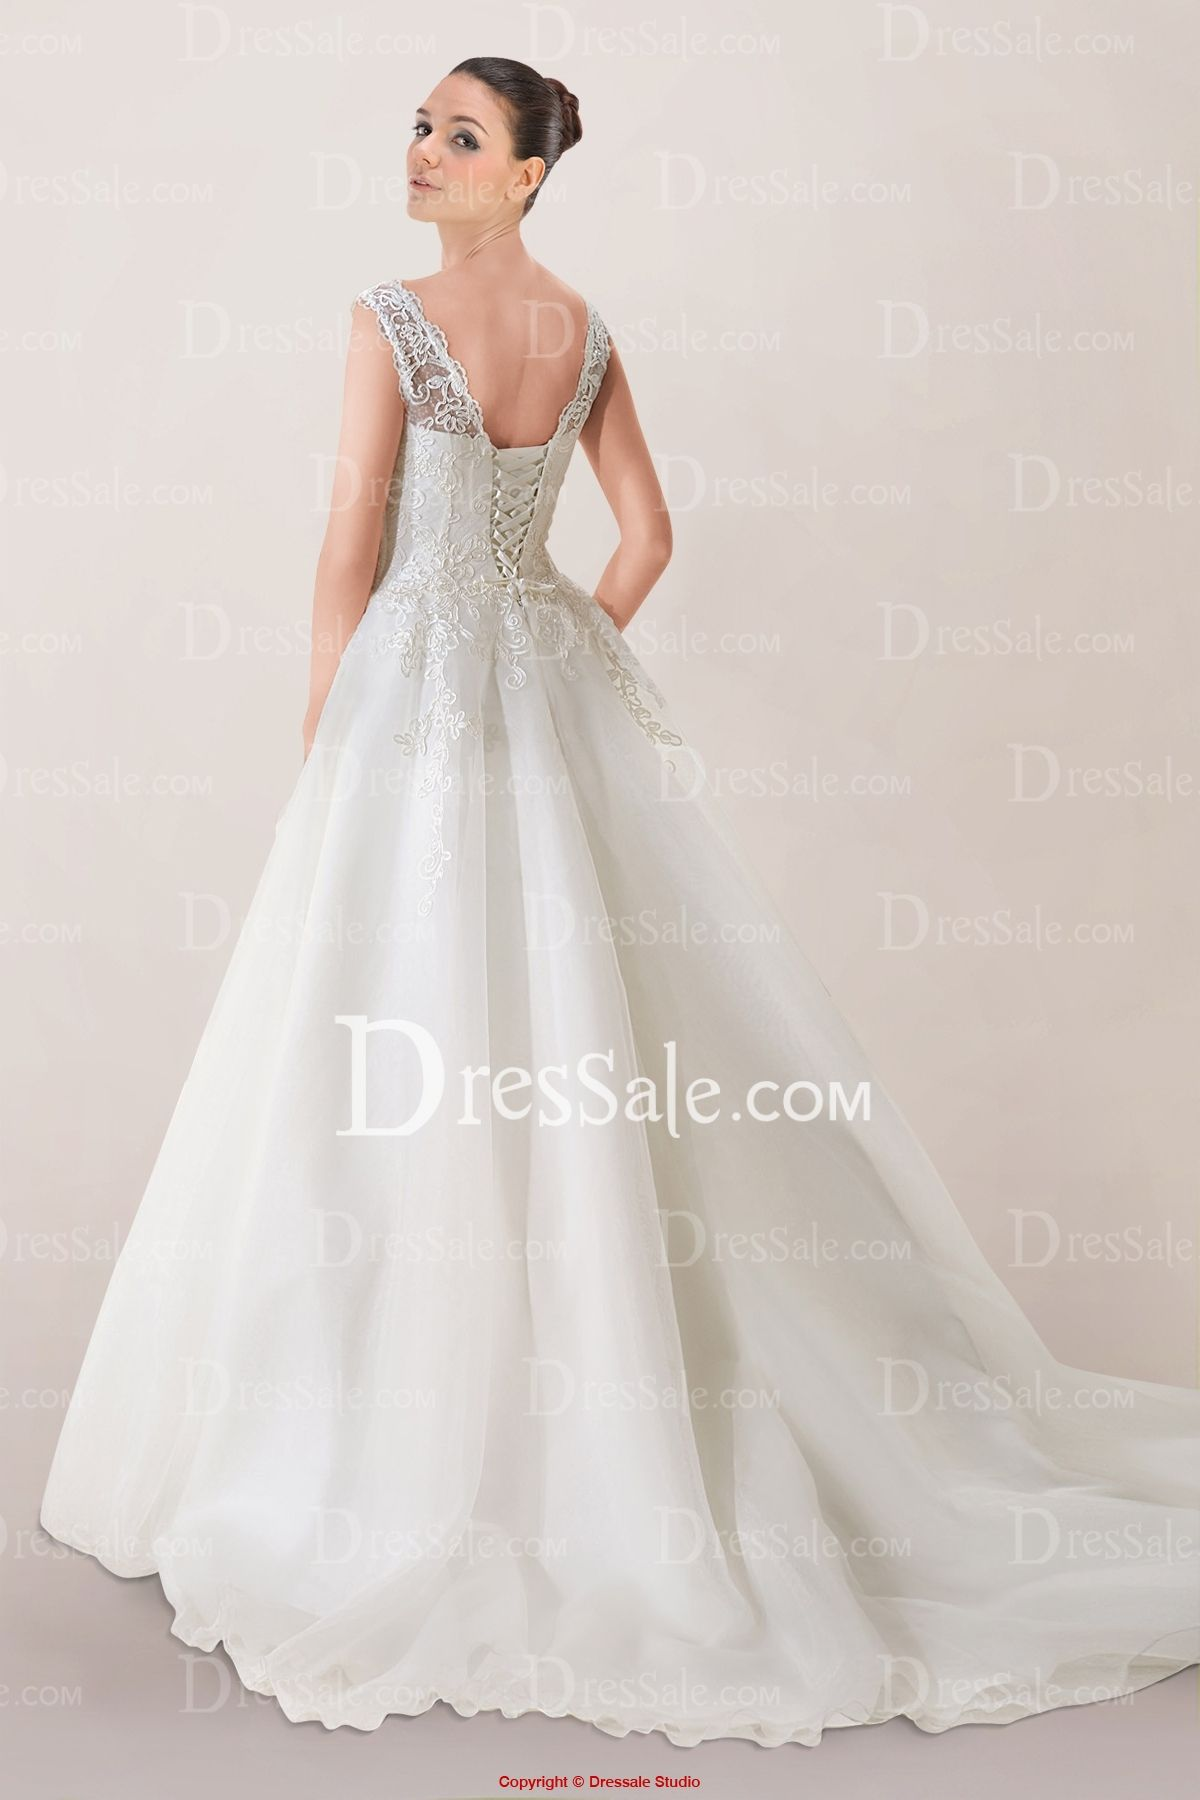 Bodice wedding dress  Exquisite Princess Wedding Dress with Plunging Neckline and Lace